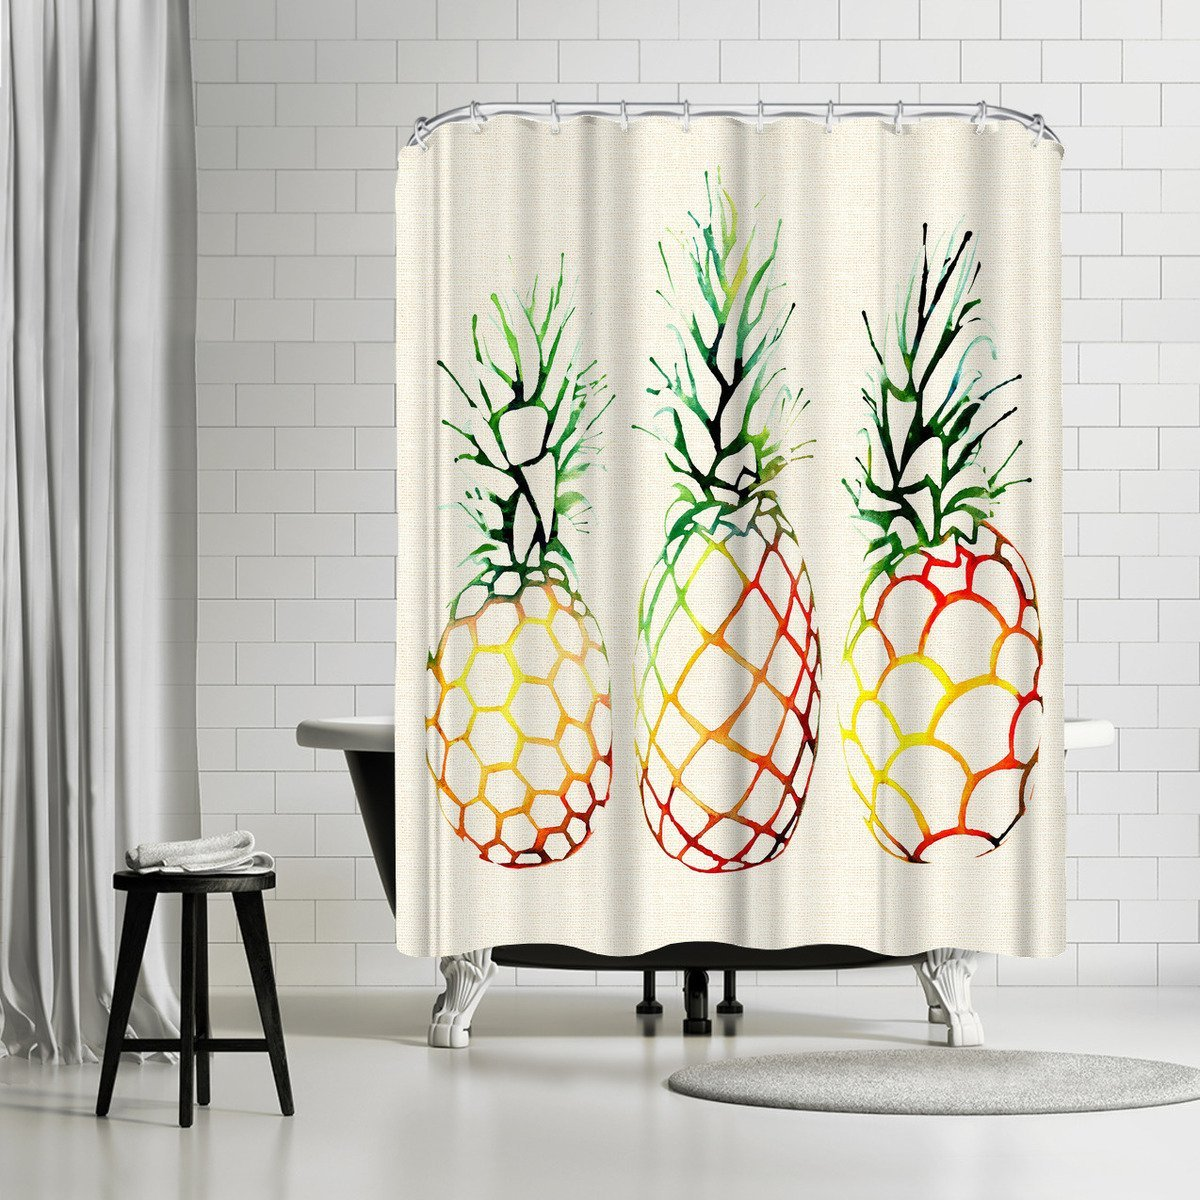 Burlap Pineapples by Sam Nagel Shower Curtain - Shower Curtain - Americanflat